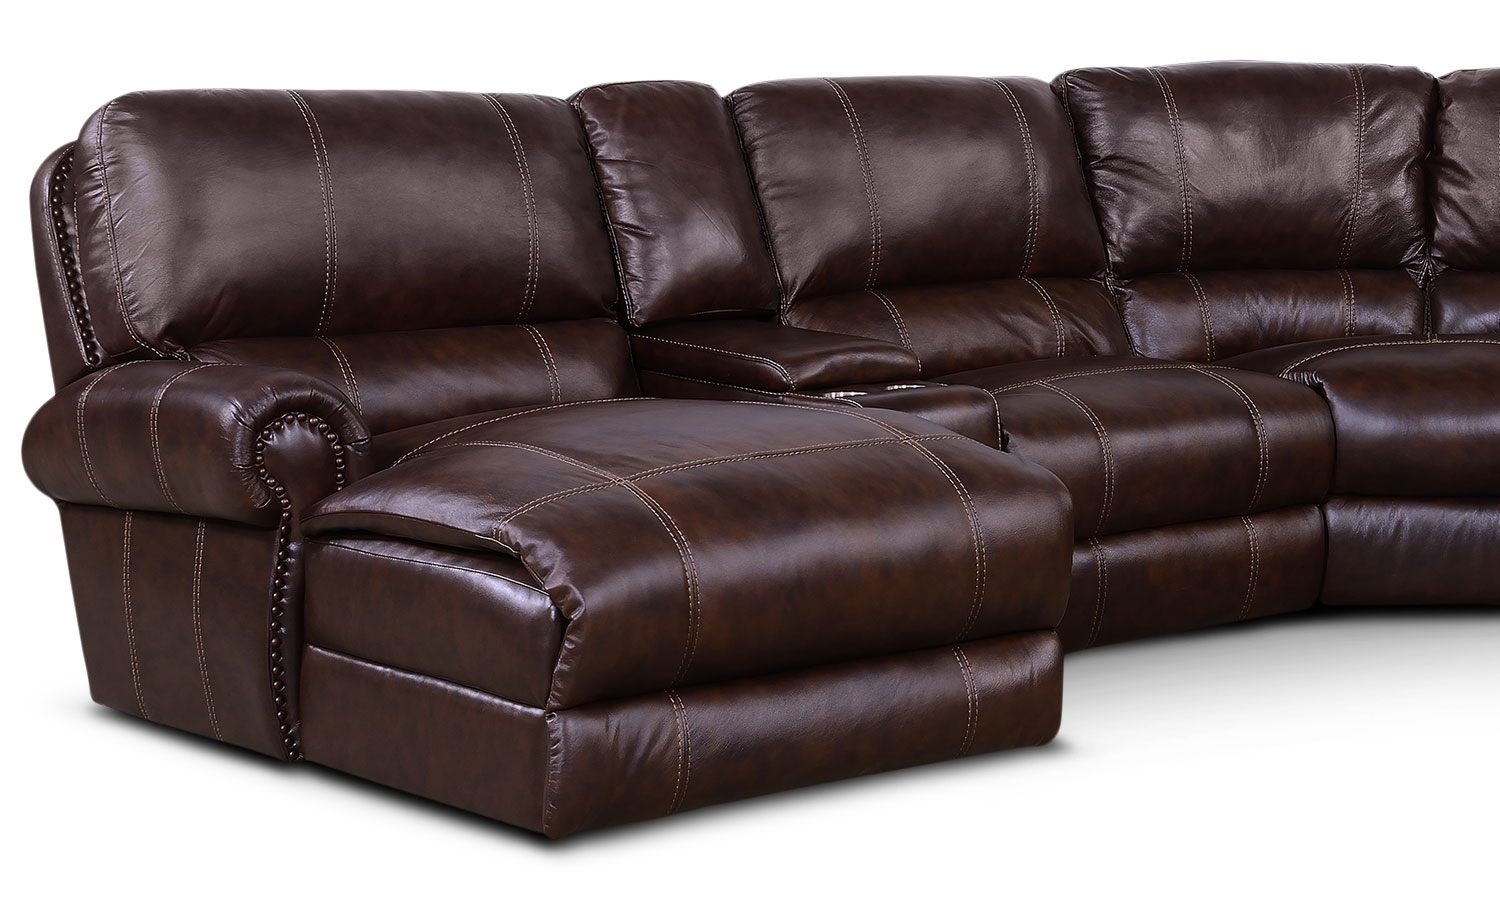 Dartmouth 6 Piece Power Reclining Sectional W/ Left Facing Chaise With Norfolk Grey 6 Piece Sectionals With Raf Chaise (View 12 of 30)